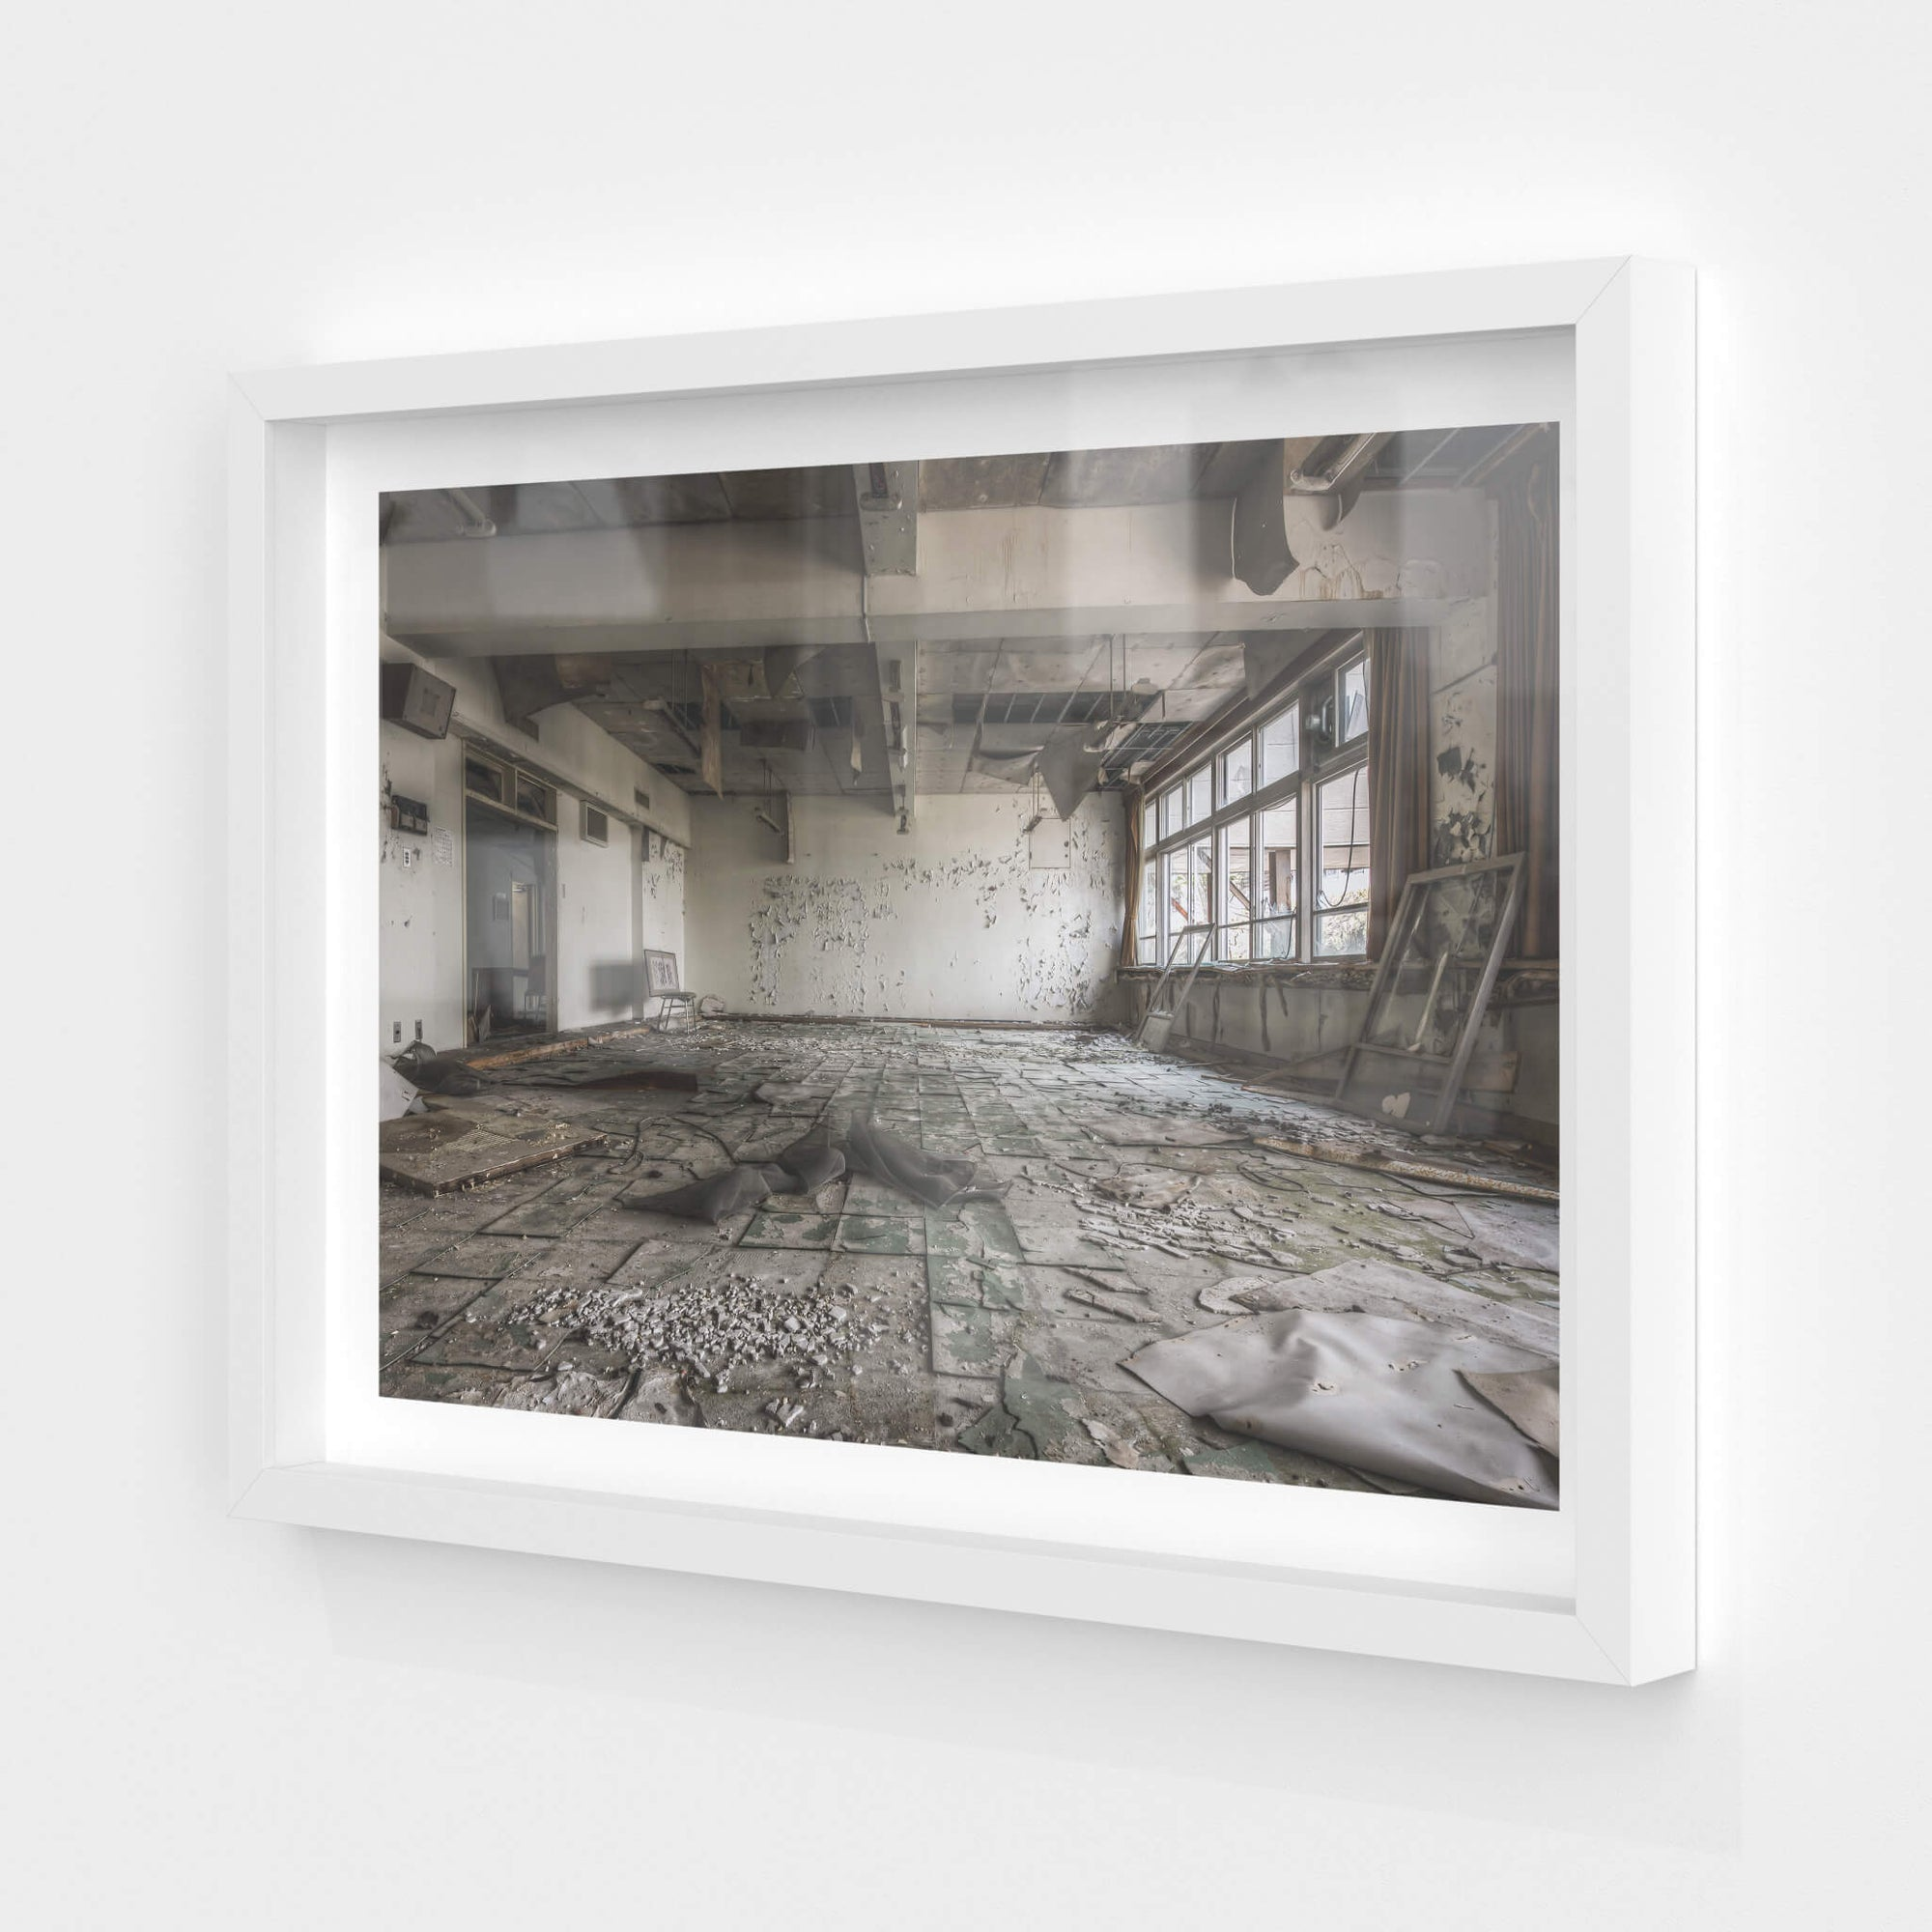 School Room | Family School Fureai Fine Art Print - Lost Collective Shop